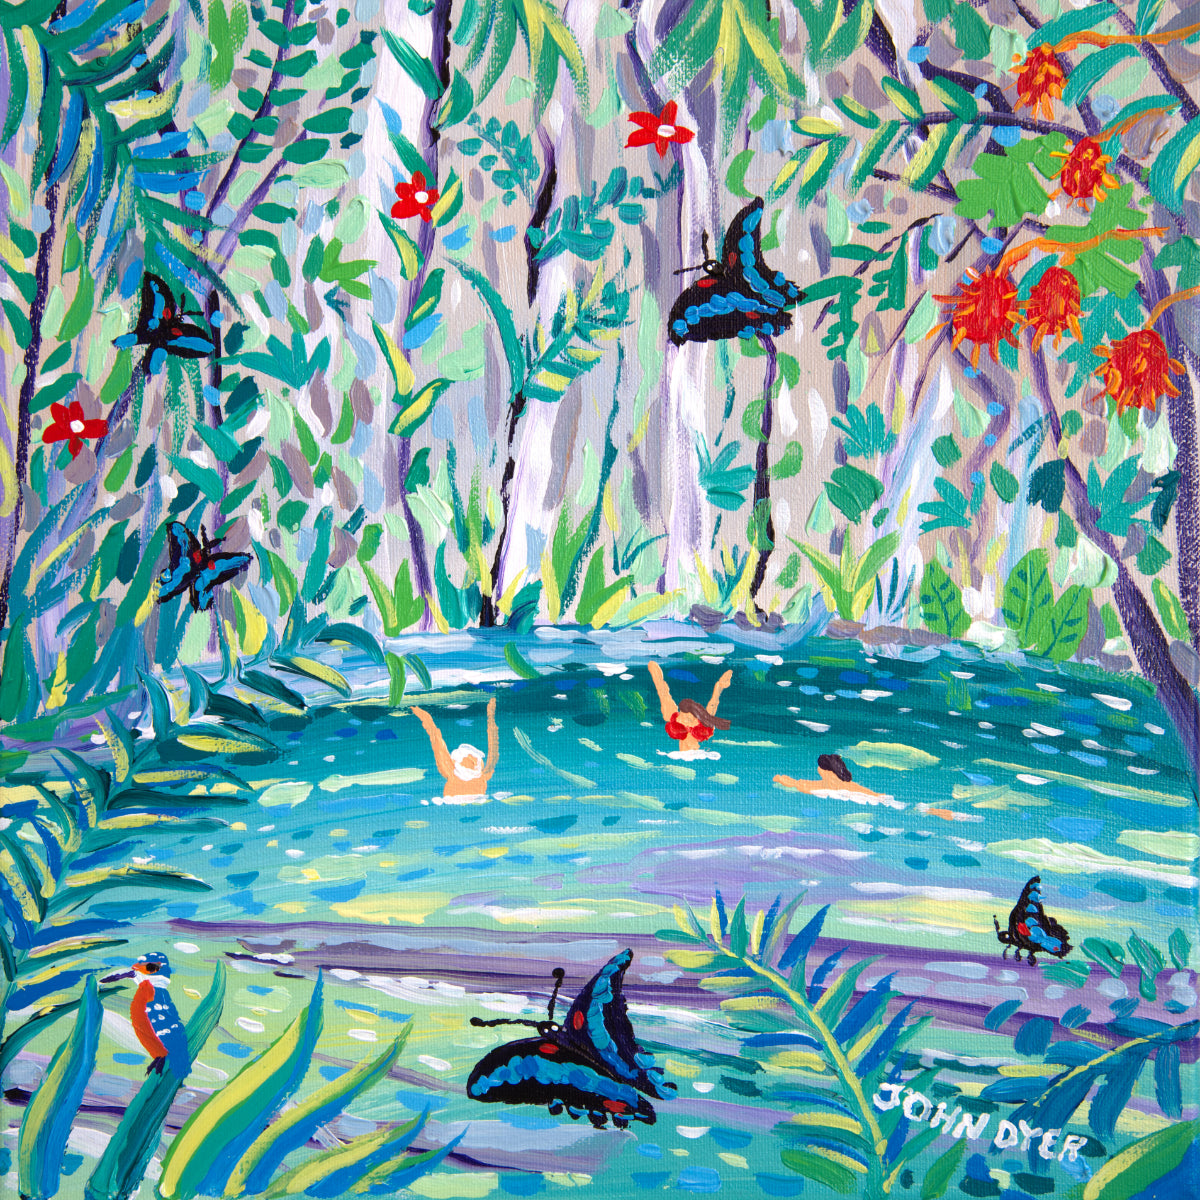 Clear water cave in Mulu rainforest Borneo - swimmers enjoy the spring water with tropical butterflies. Signed print by John Dyer